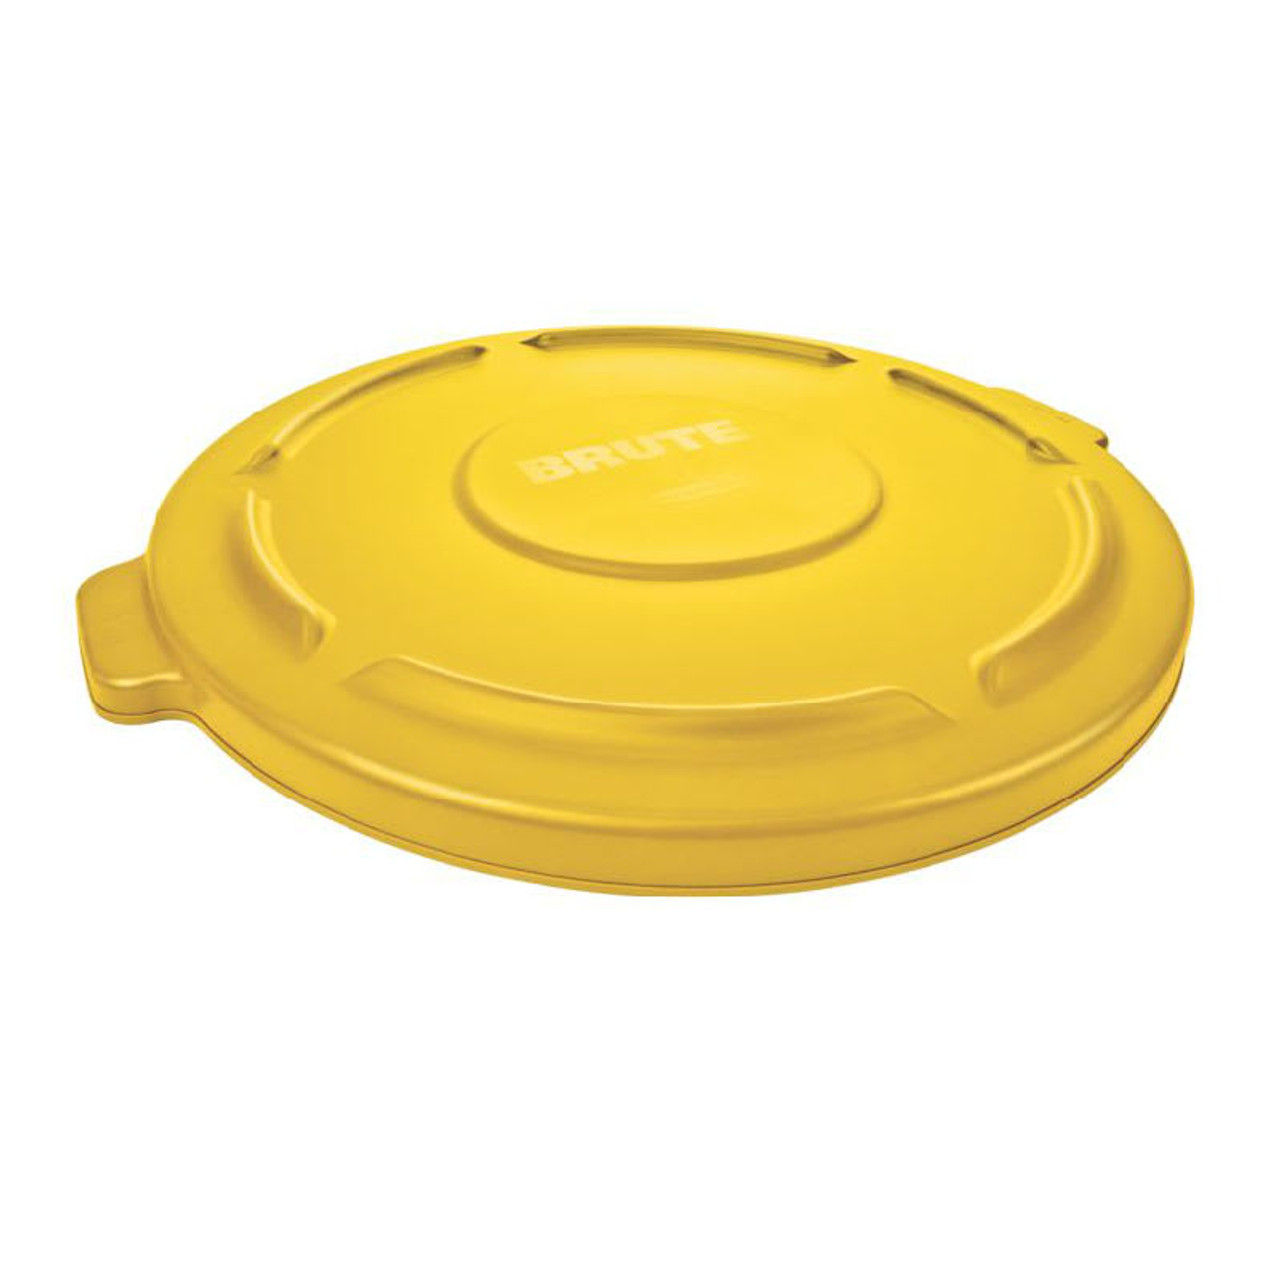 Rubbermaid Brute Lid - Yellow